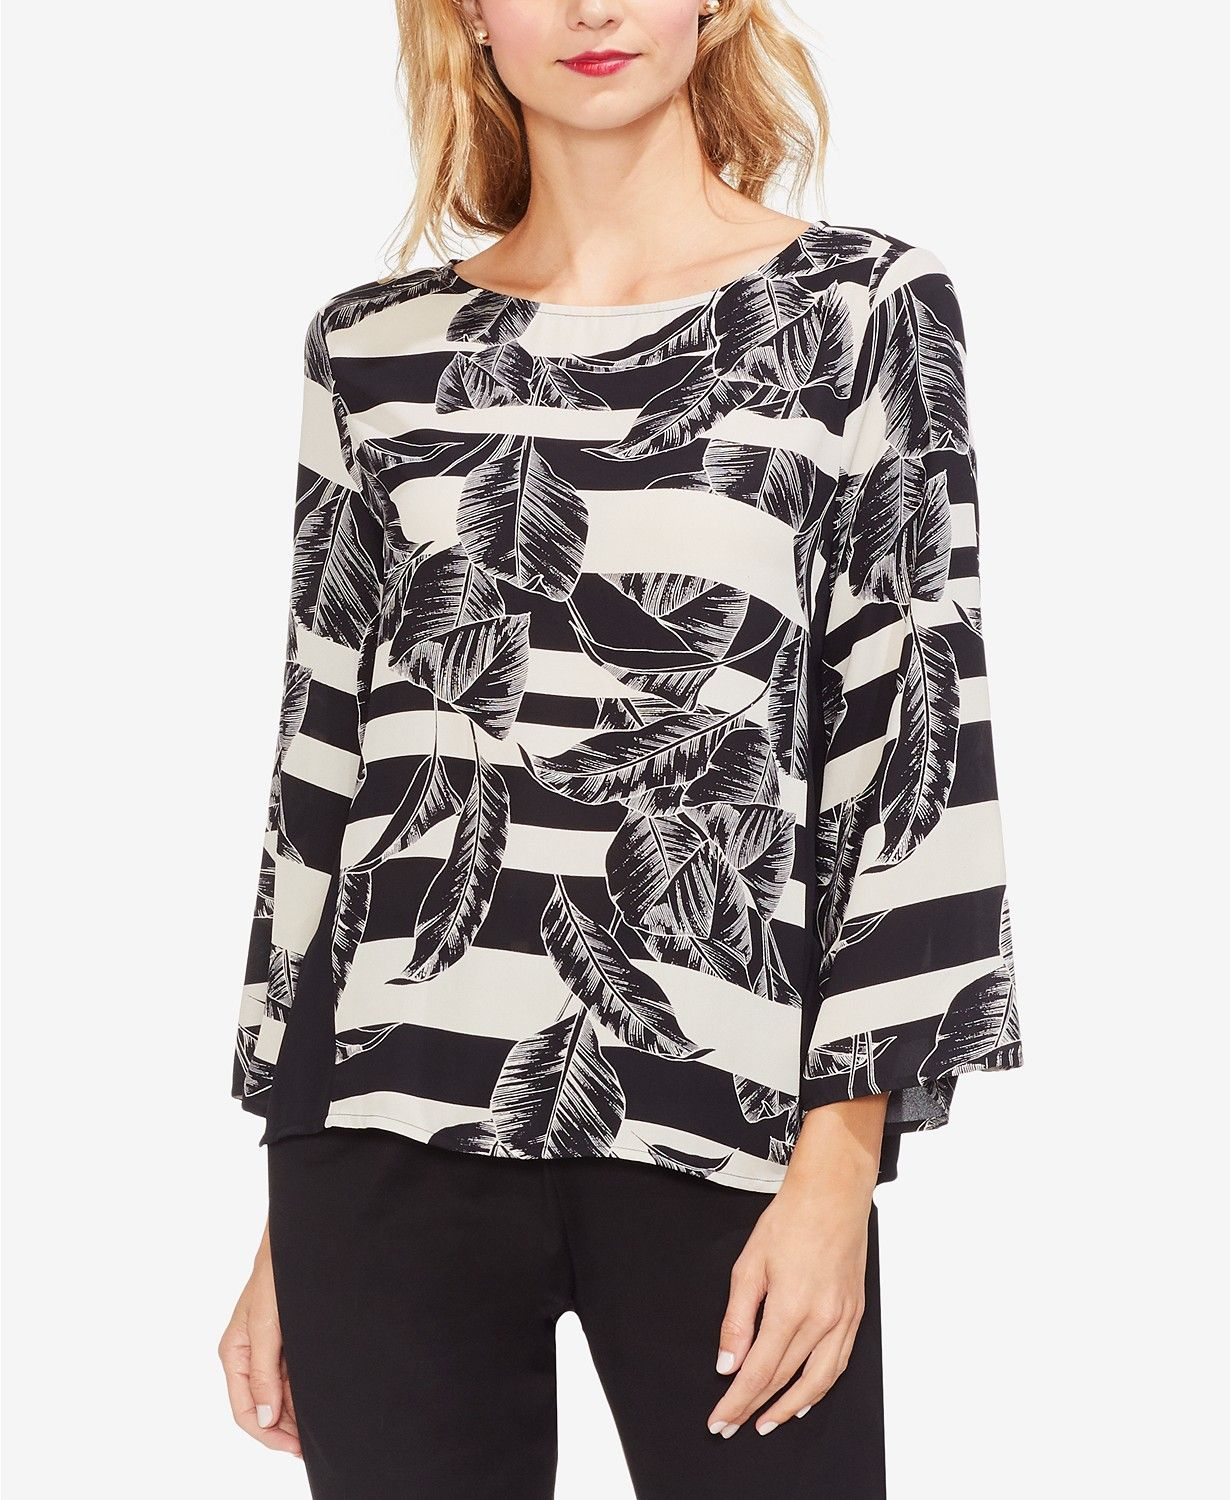 6b4f4229fb6e Printed Bell-Sleeve Blouse in 2019 | ***PRINTS*** | Bell sleeve ...